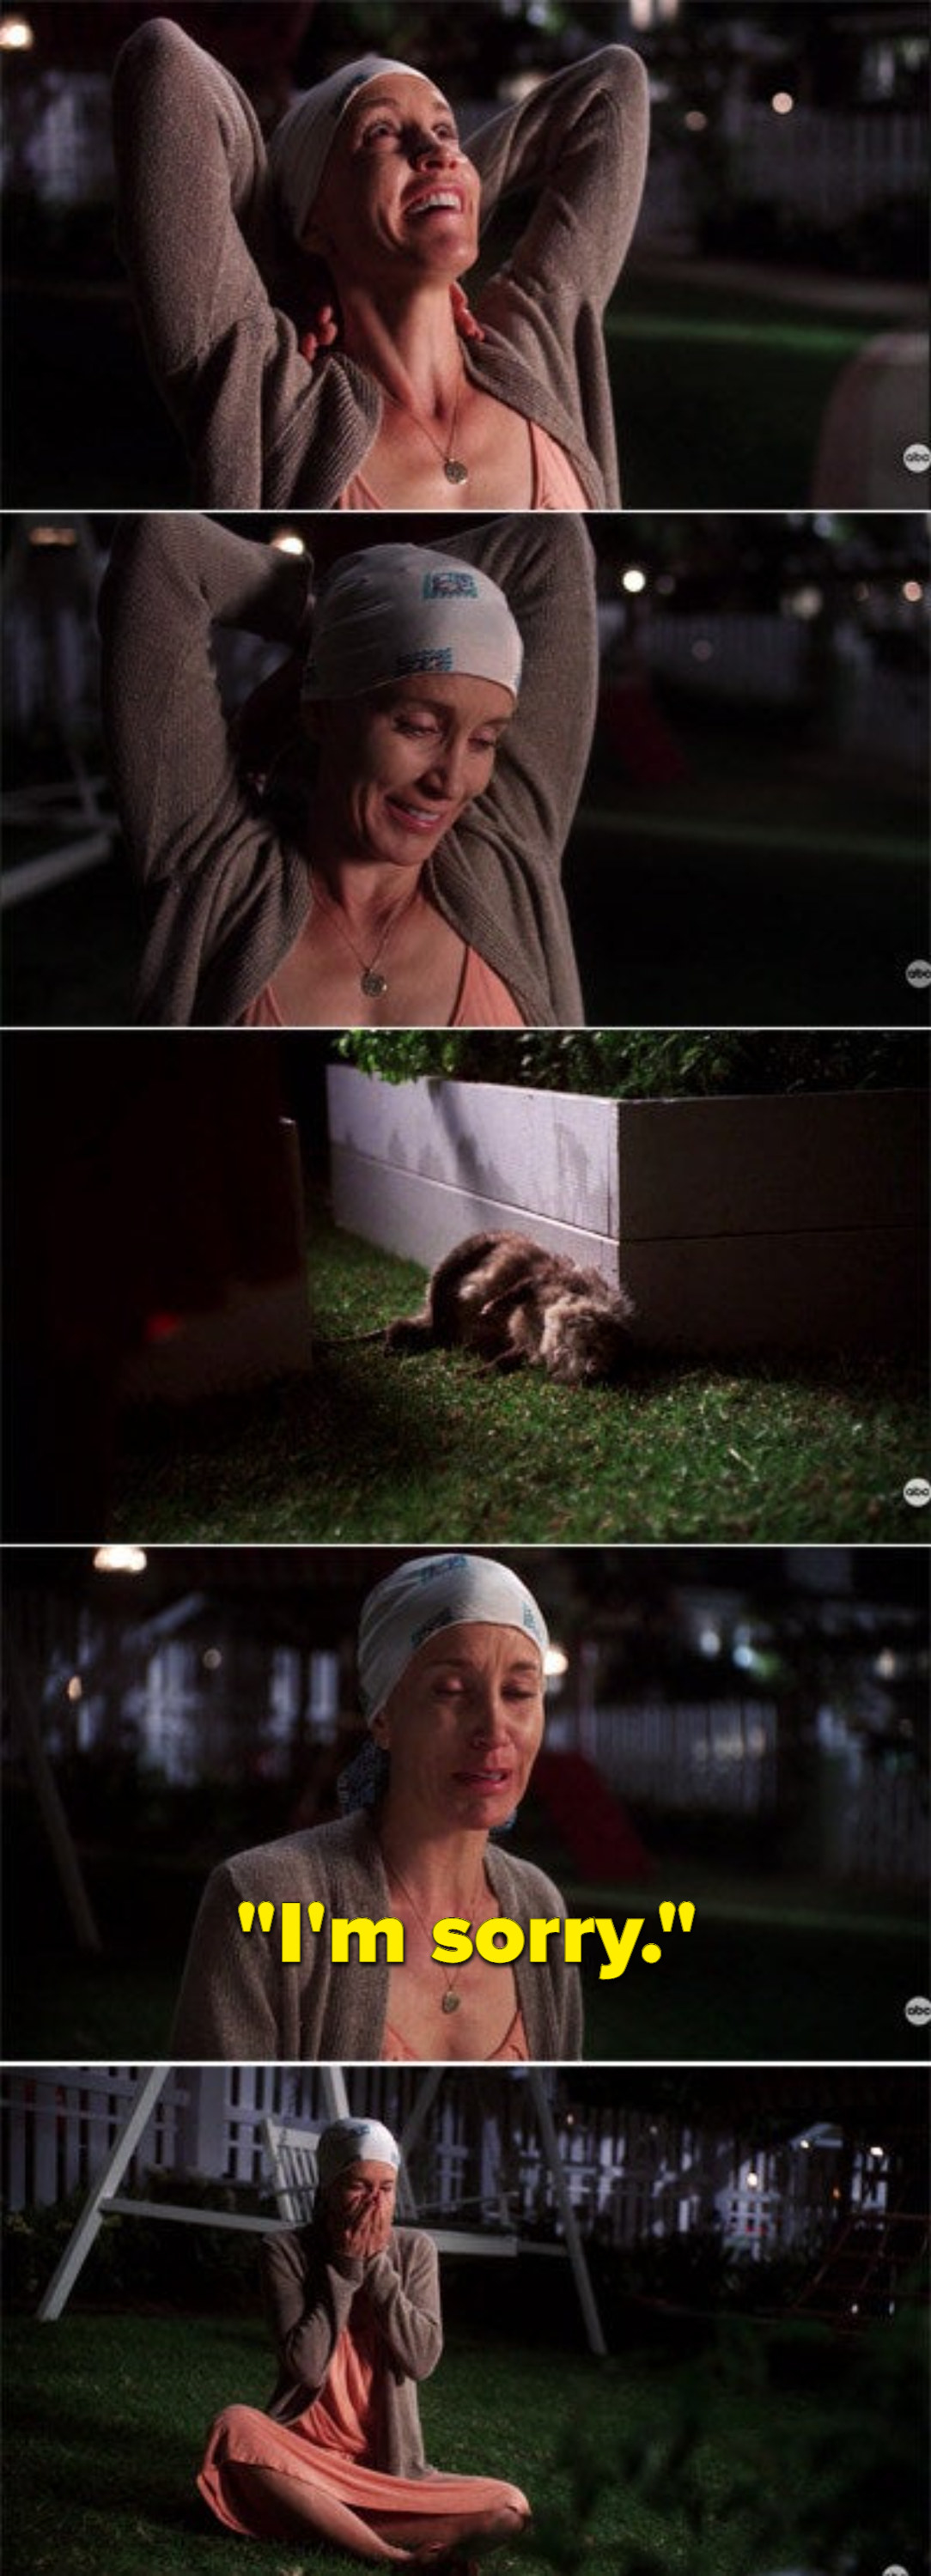 Lynette walking around her backyard sighing in relief, noticing the dead possum, apologizing to it, and sobbing